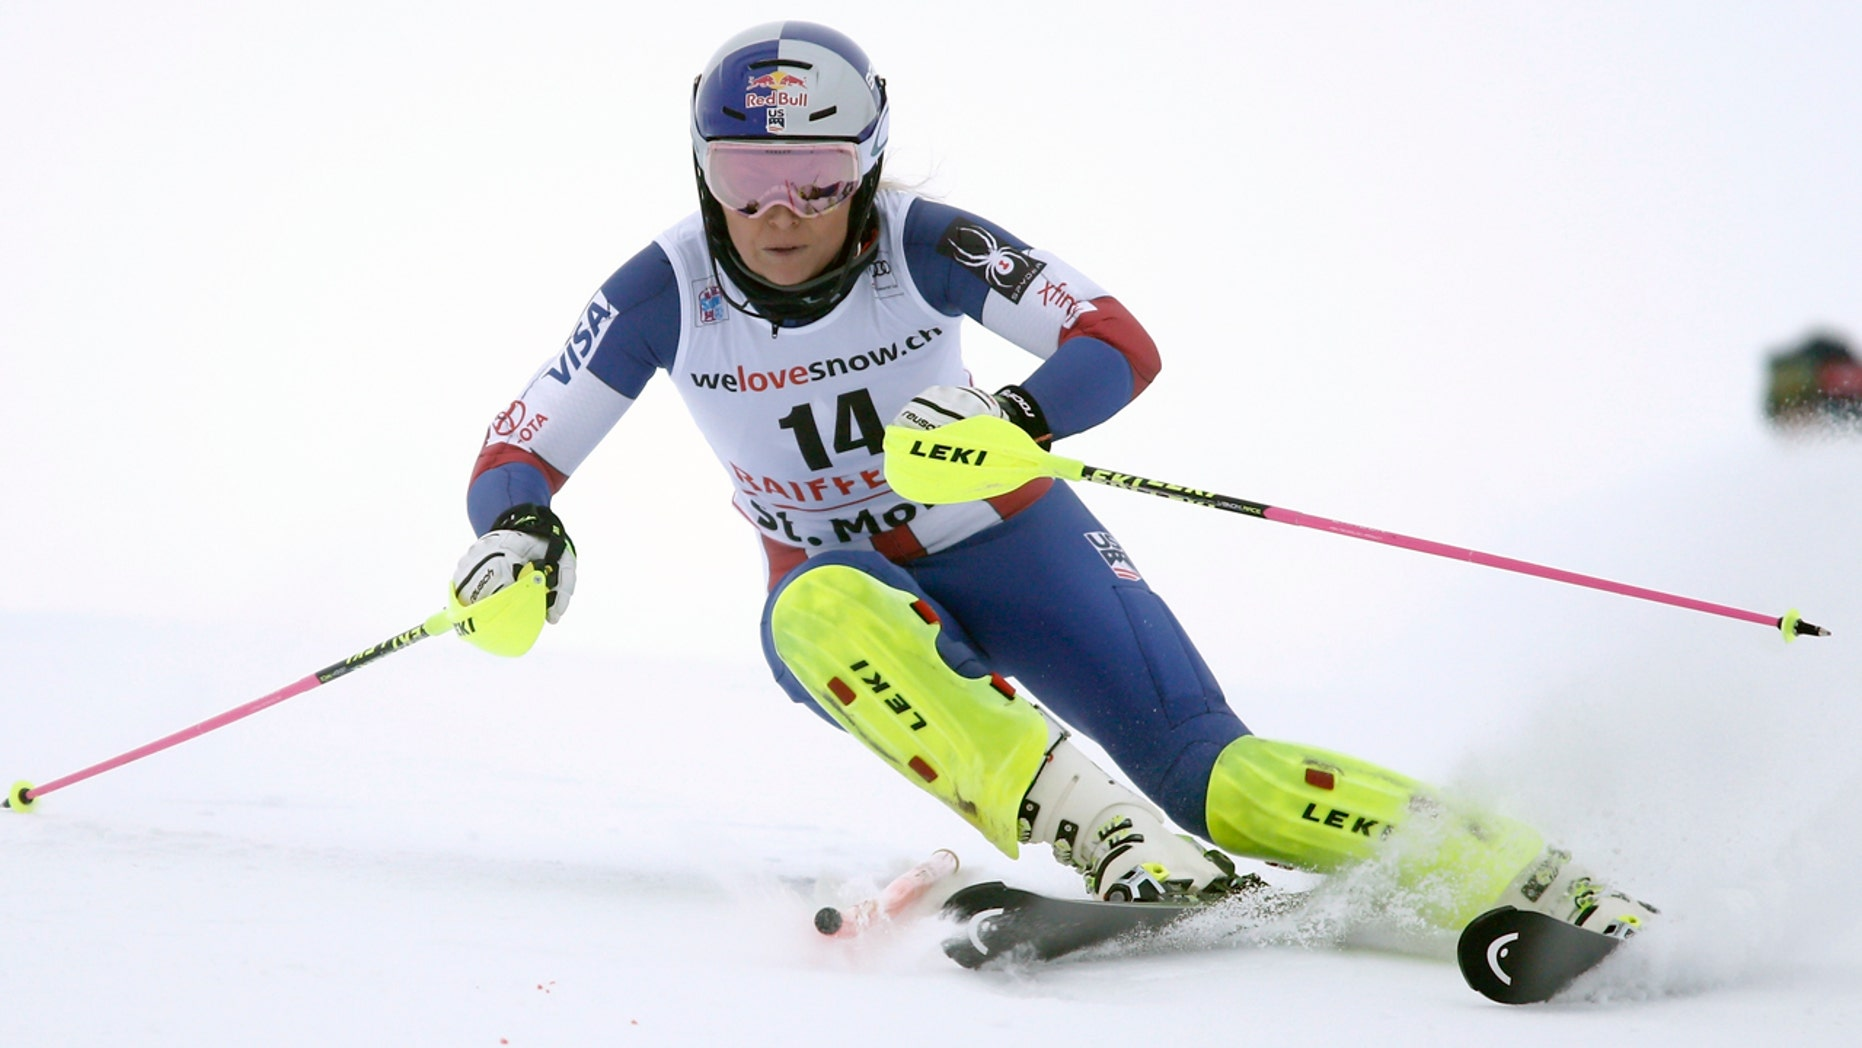 Lindsey Vonn has more wins in World Cup events than any other female alpine skier.